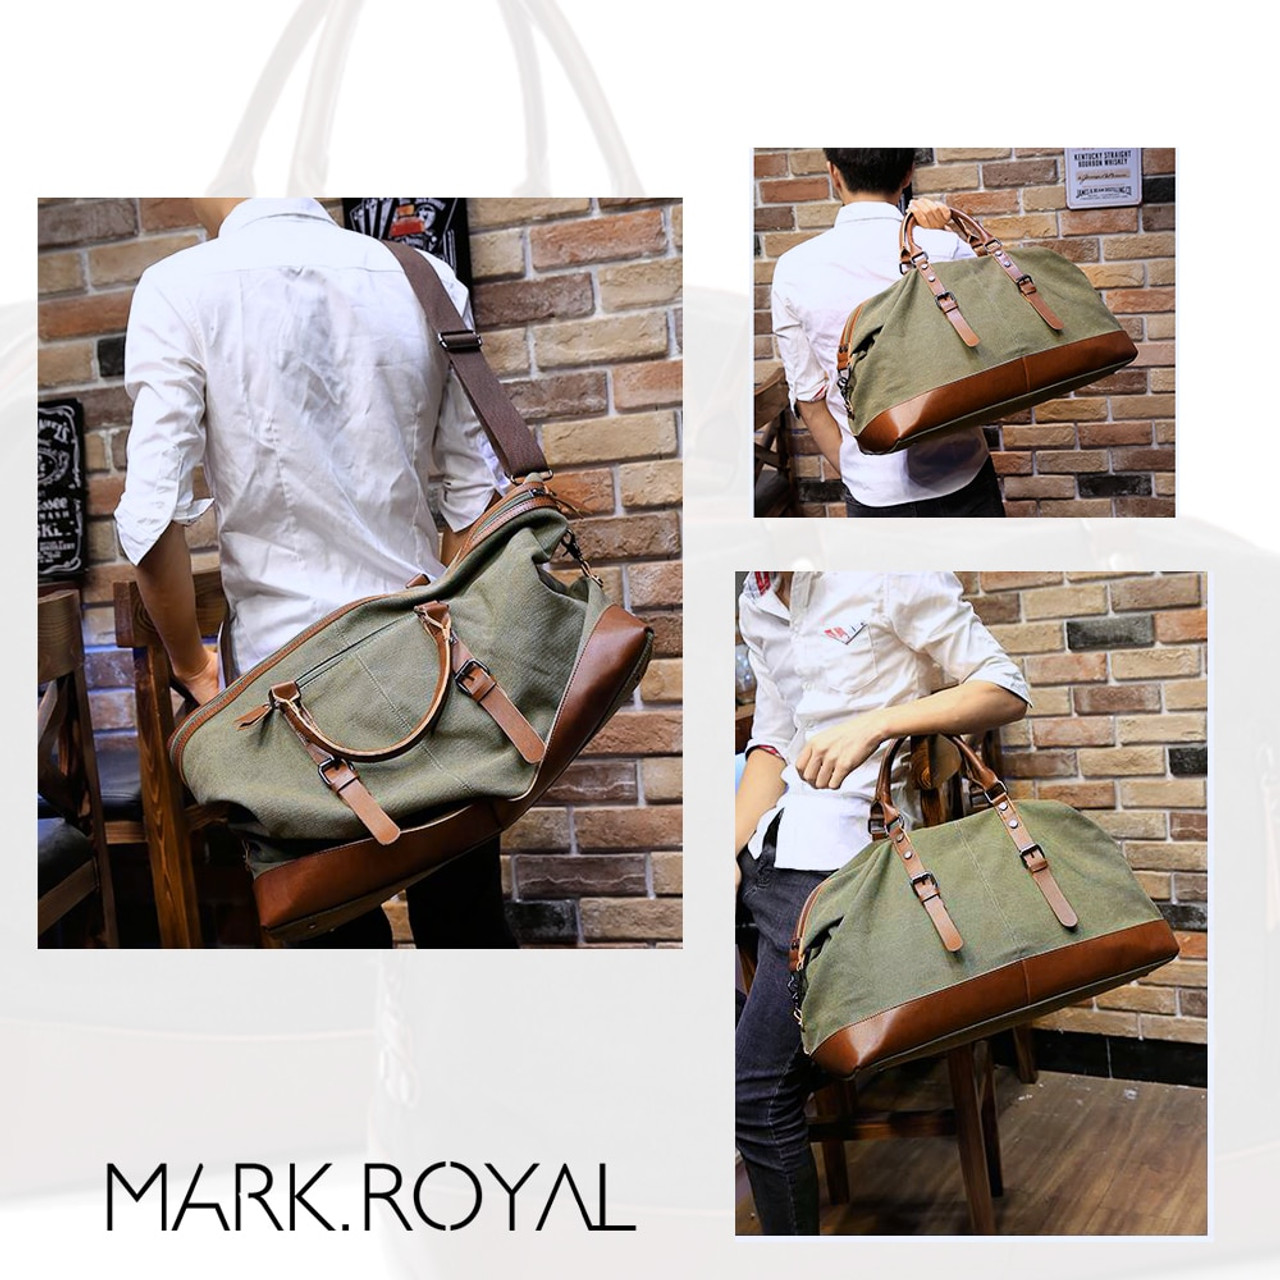 52bec1a34 ... MARKROYAL Canvas Leather Men Travel Bags Carry on Luggage Bags Men  Duffel Bags Handbag Travel Tote ...